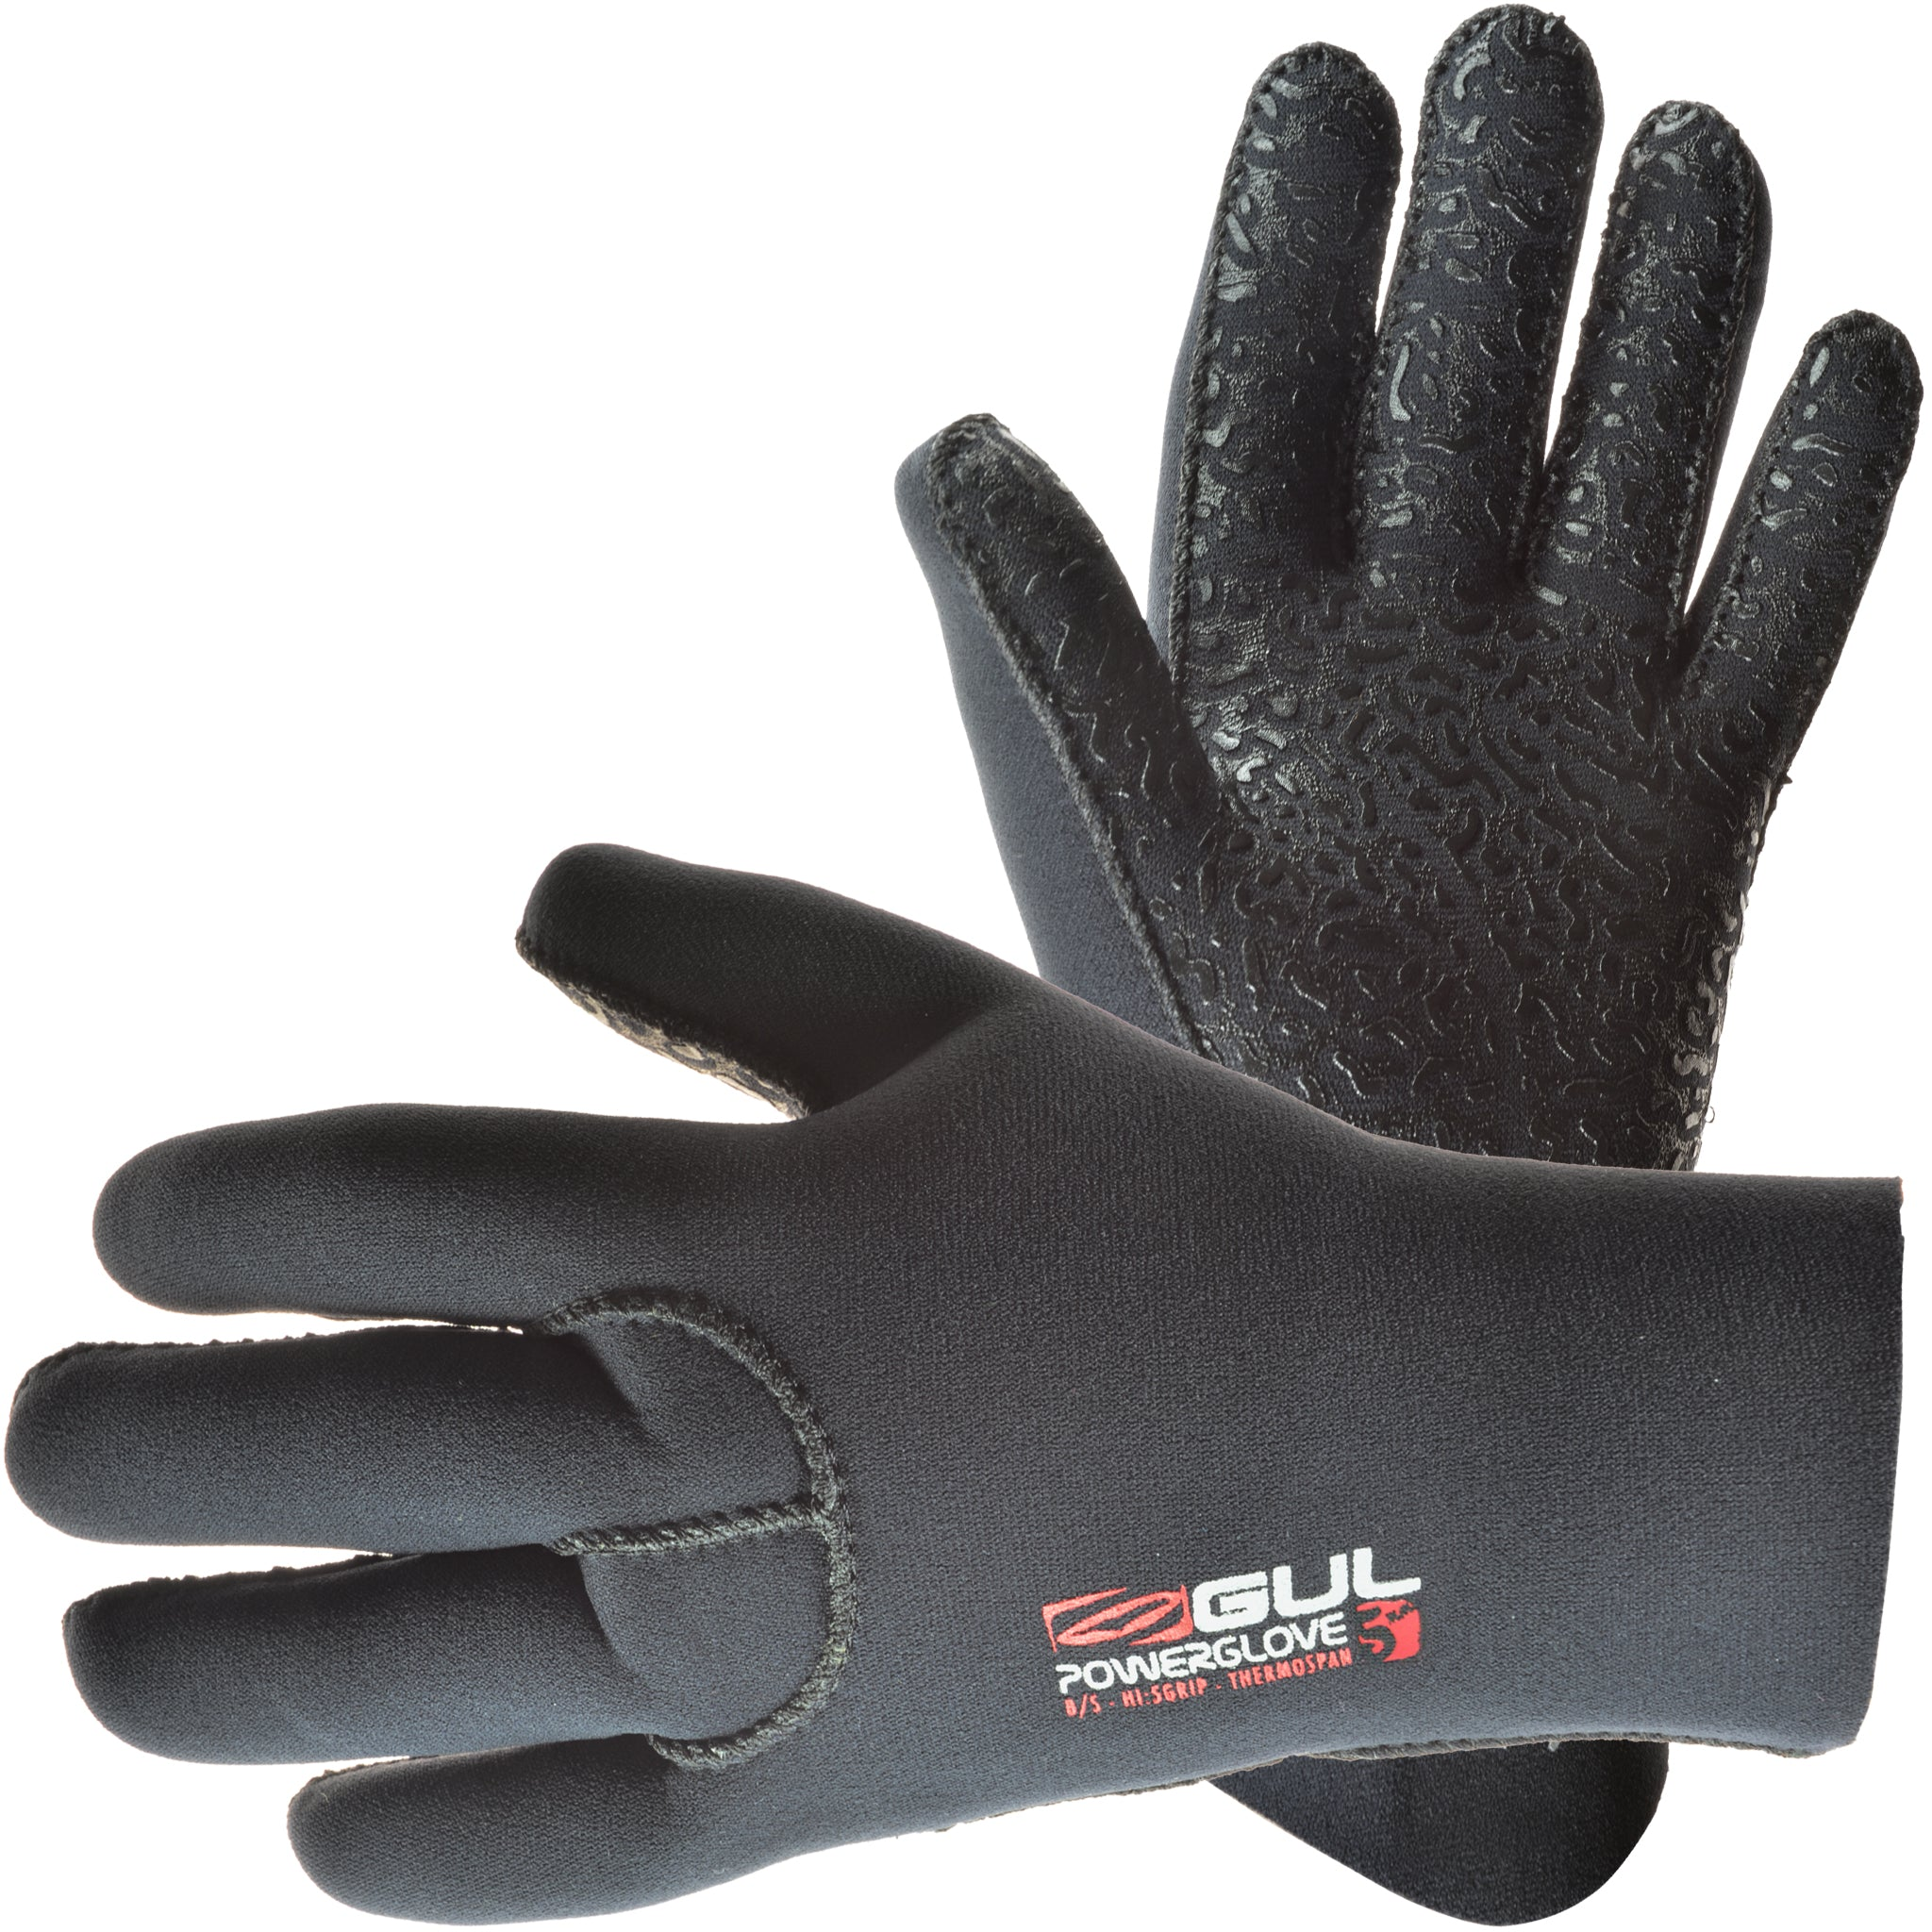 S 3mm titanium X-stretch neoprene wetsuit gloves adult sizes available XL